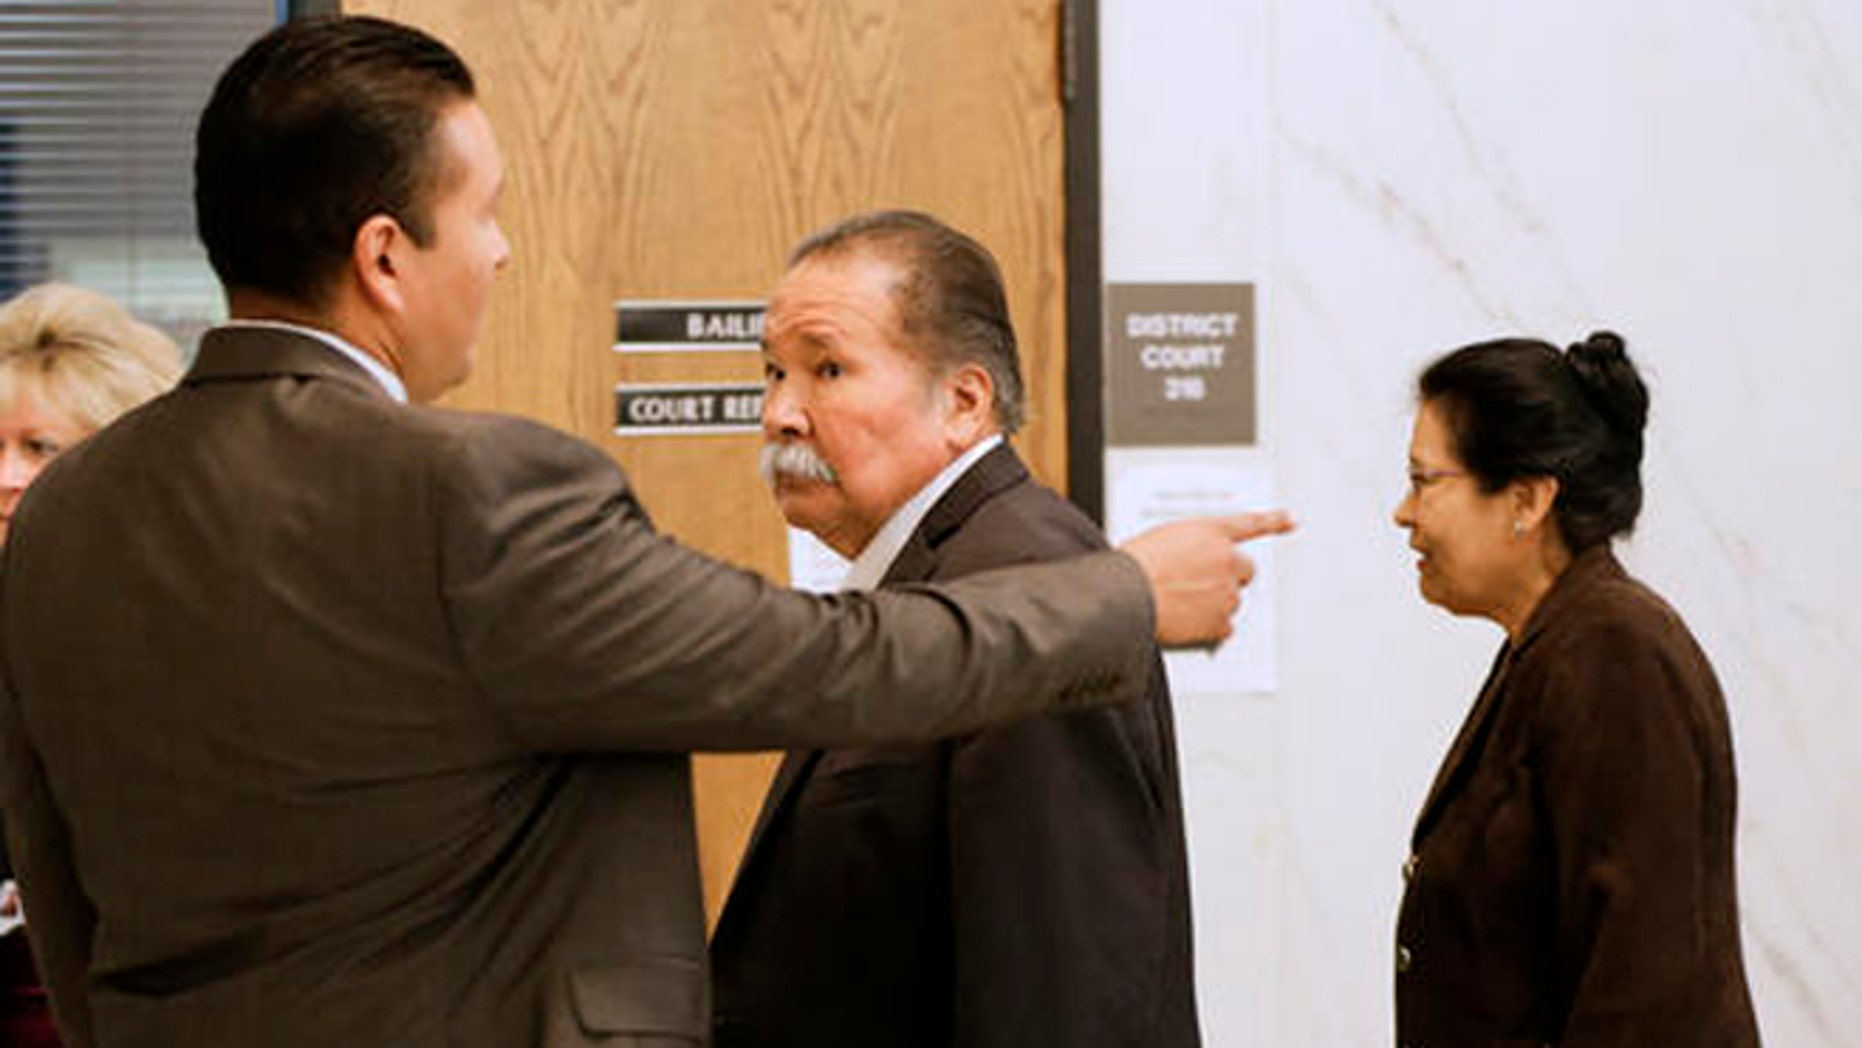 Frederick and Estella Garcia, along with their son Fernando, left, arrive to the Douglas County Courtroom in Omaha, Neb., Monday, Oct. 3, 2016, as lawyers gave opening statements in the first-degree murder trial of their son Anthony Garcia, charged in the killings of four people with ties to Creighton University's medical school. (AP Photo/Nati Harnik)